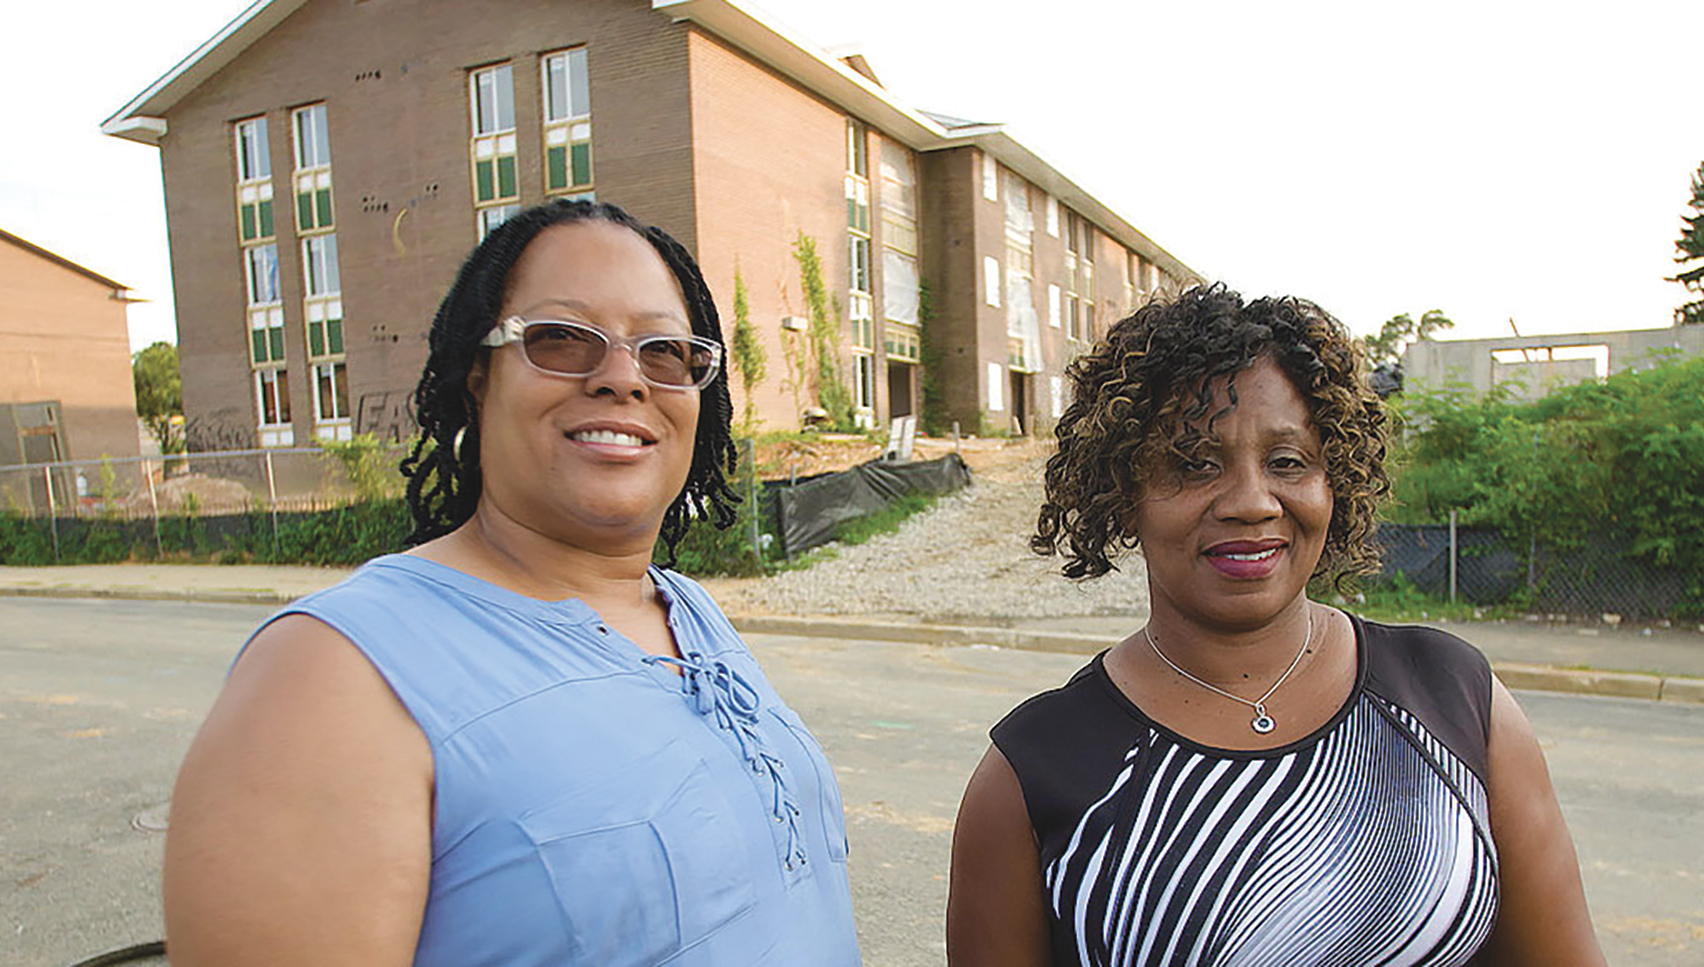 Cynthia Eaglin and Rufaro Jenkins in front of their former home at Parkway Overlook Apartments in Washington, D.C. (Courtesy Photo)